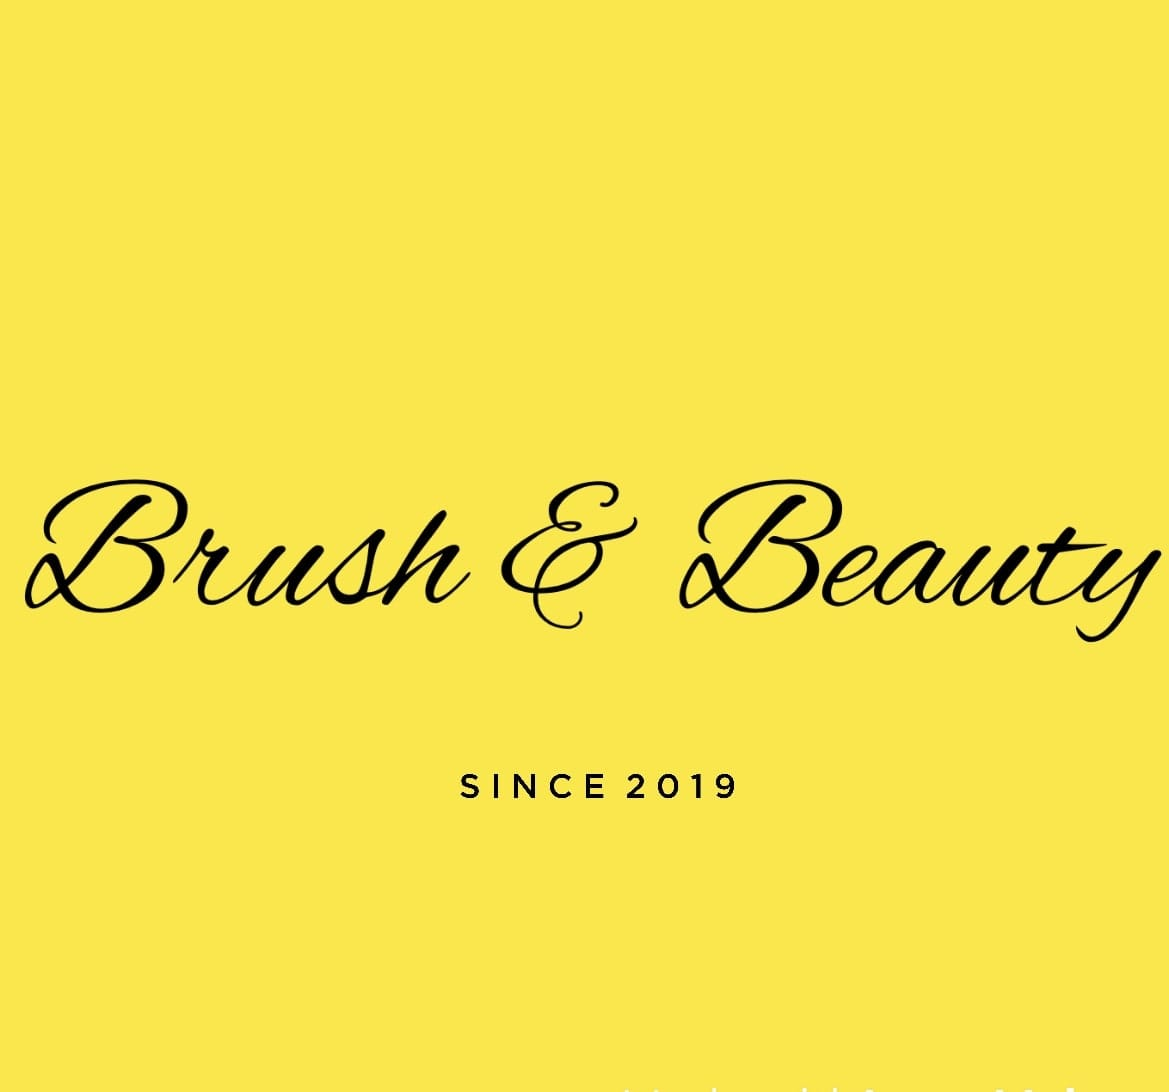 Brush and Beauty